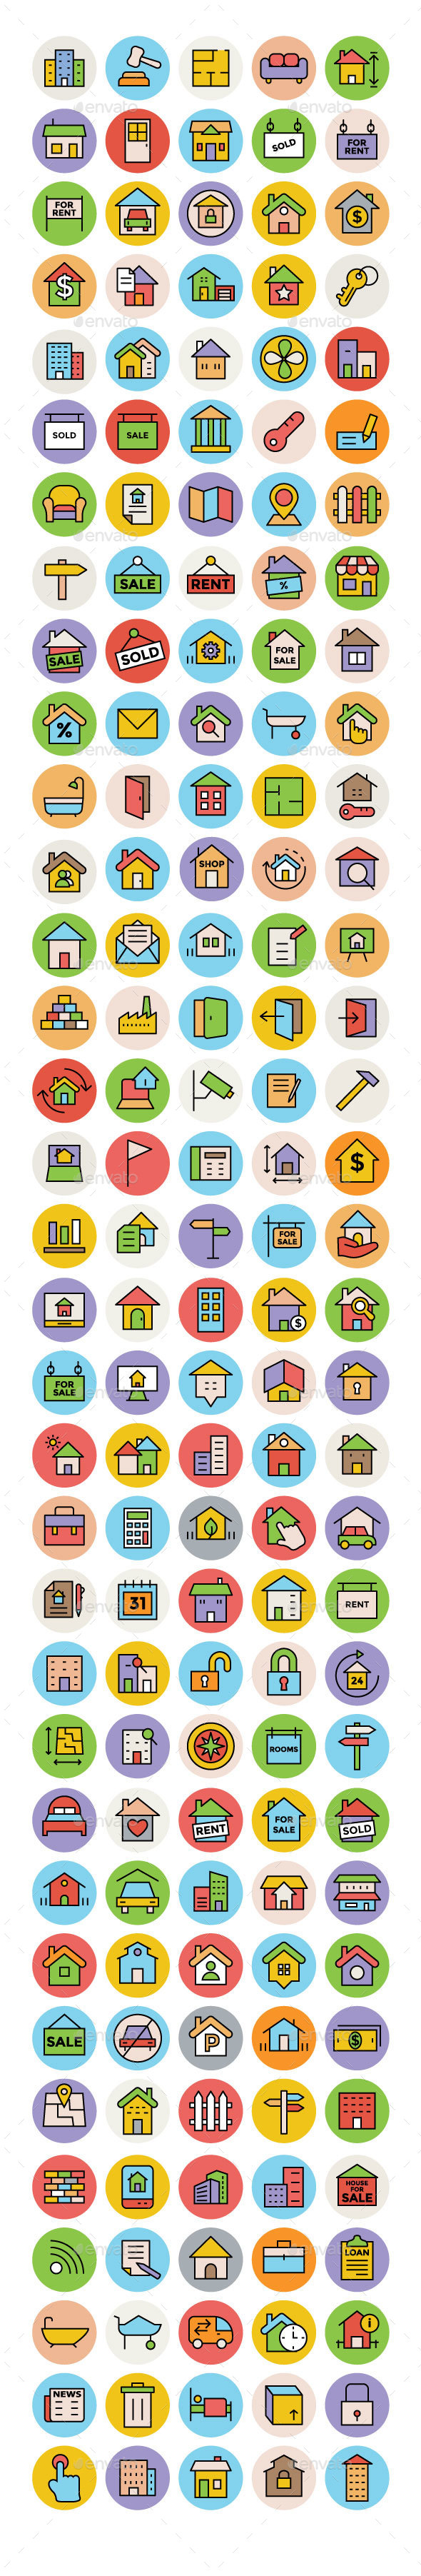 150+ Real Estate Icons Set - Business Icons